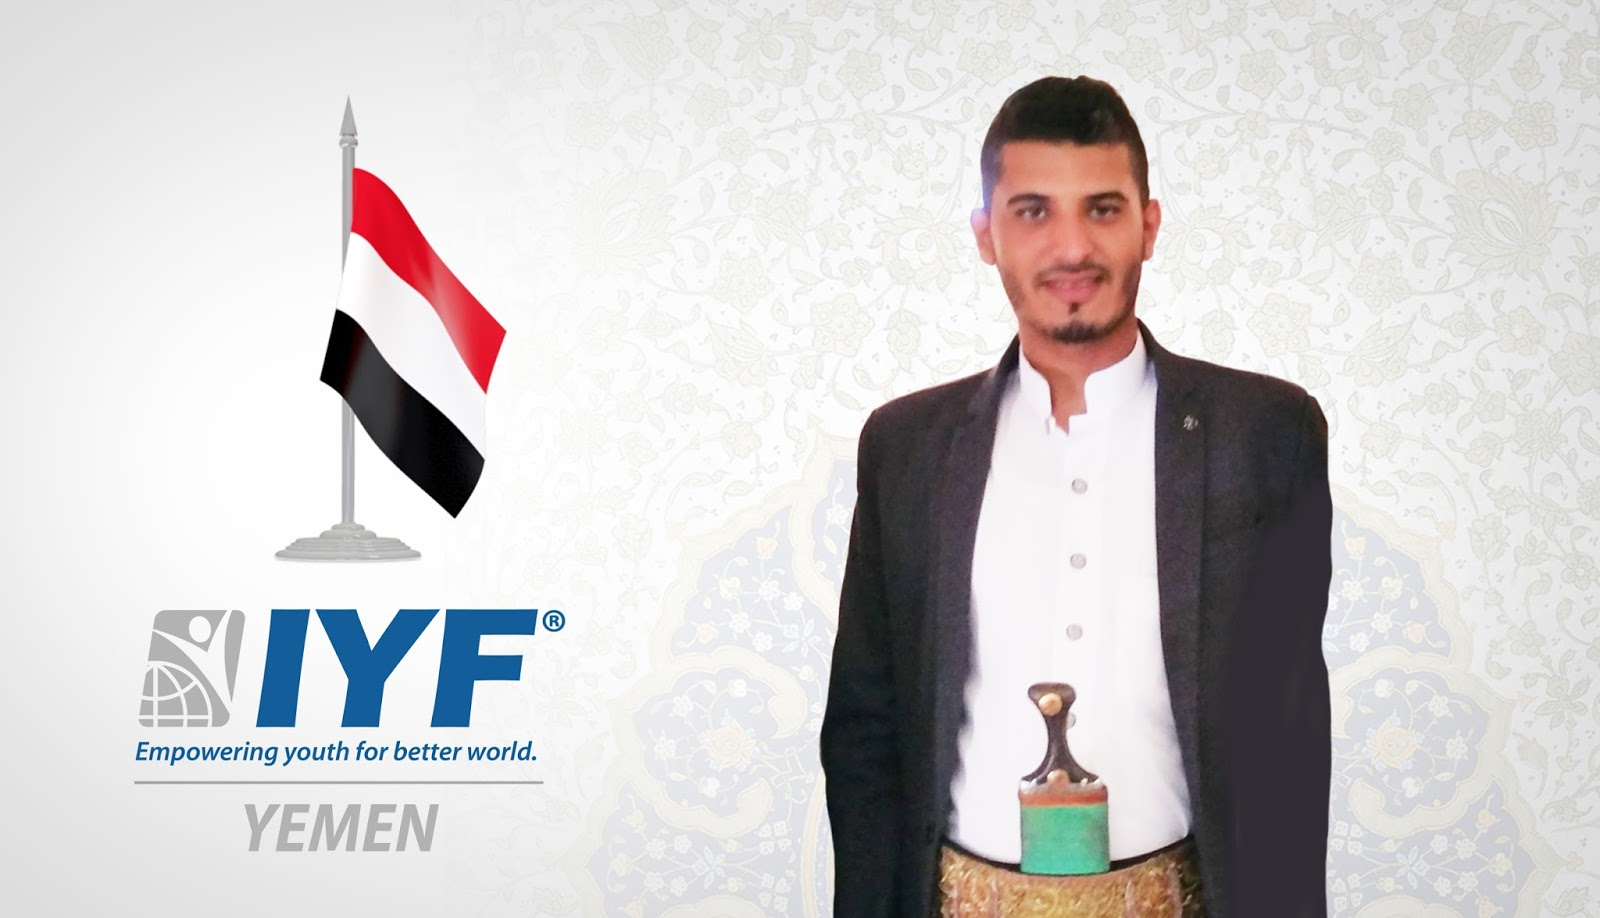 Hamza Al Fareh as IYF Representative in Yemen